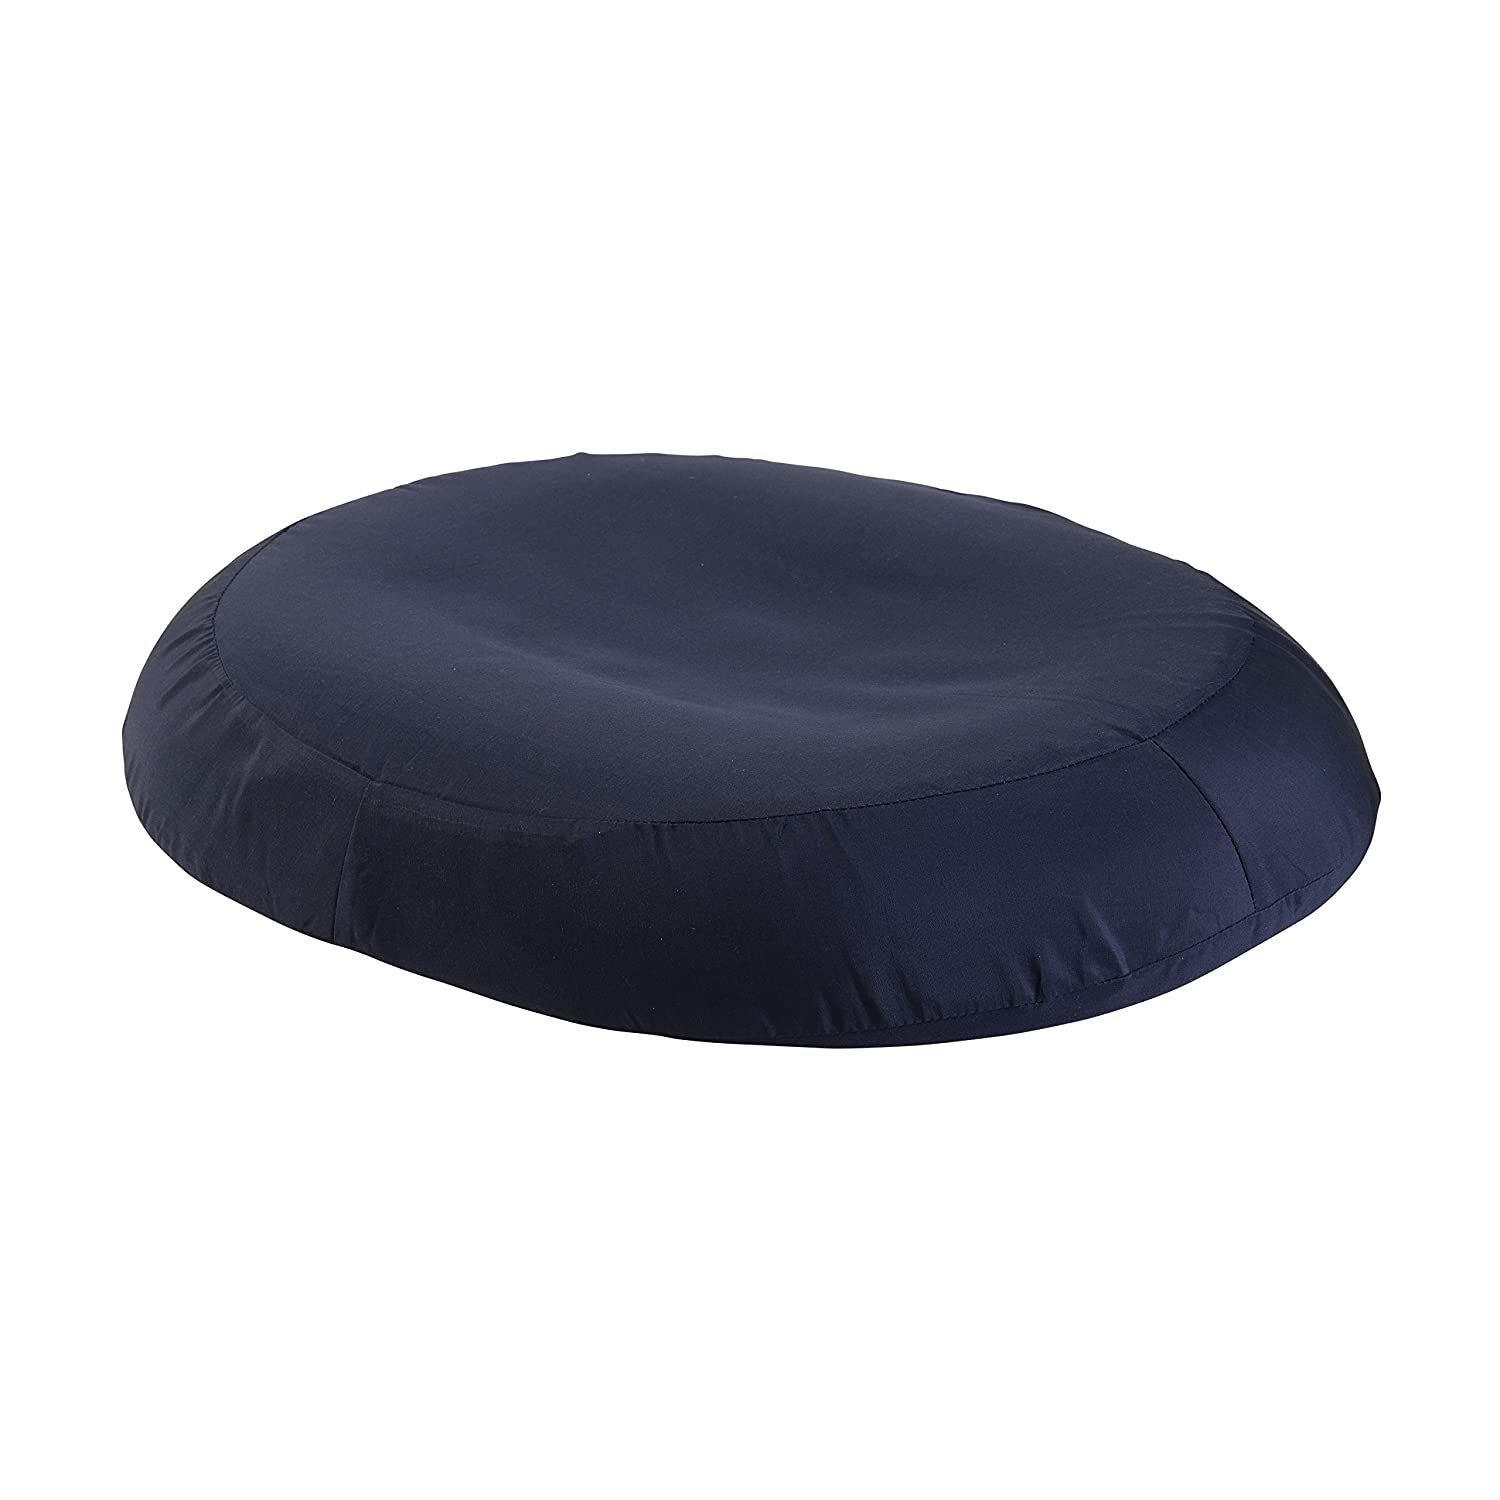 DMI 18-inch Molded Foam Ring Donut Seat Cushion Pillow, Navy 513-8018-2400